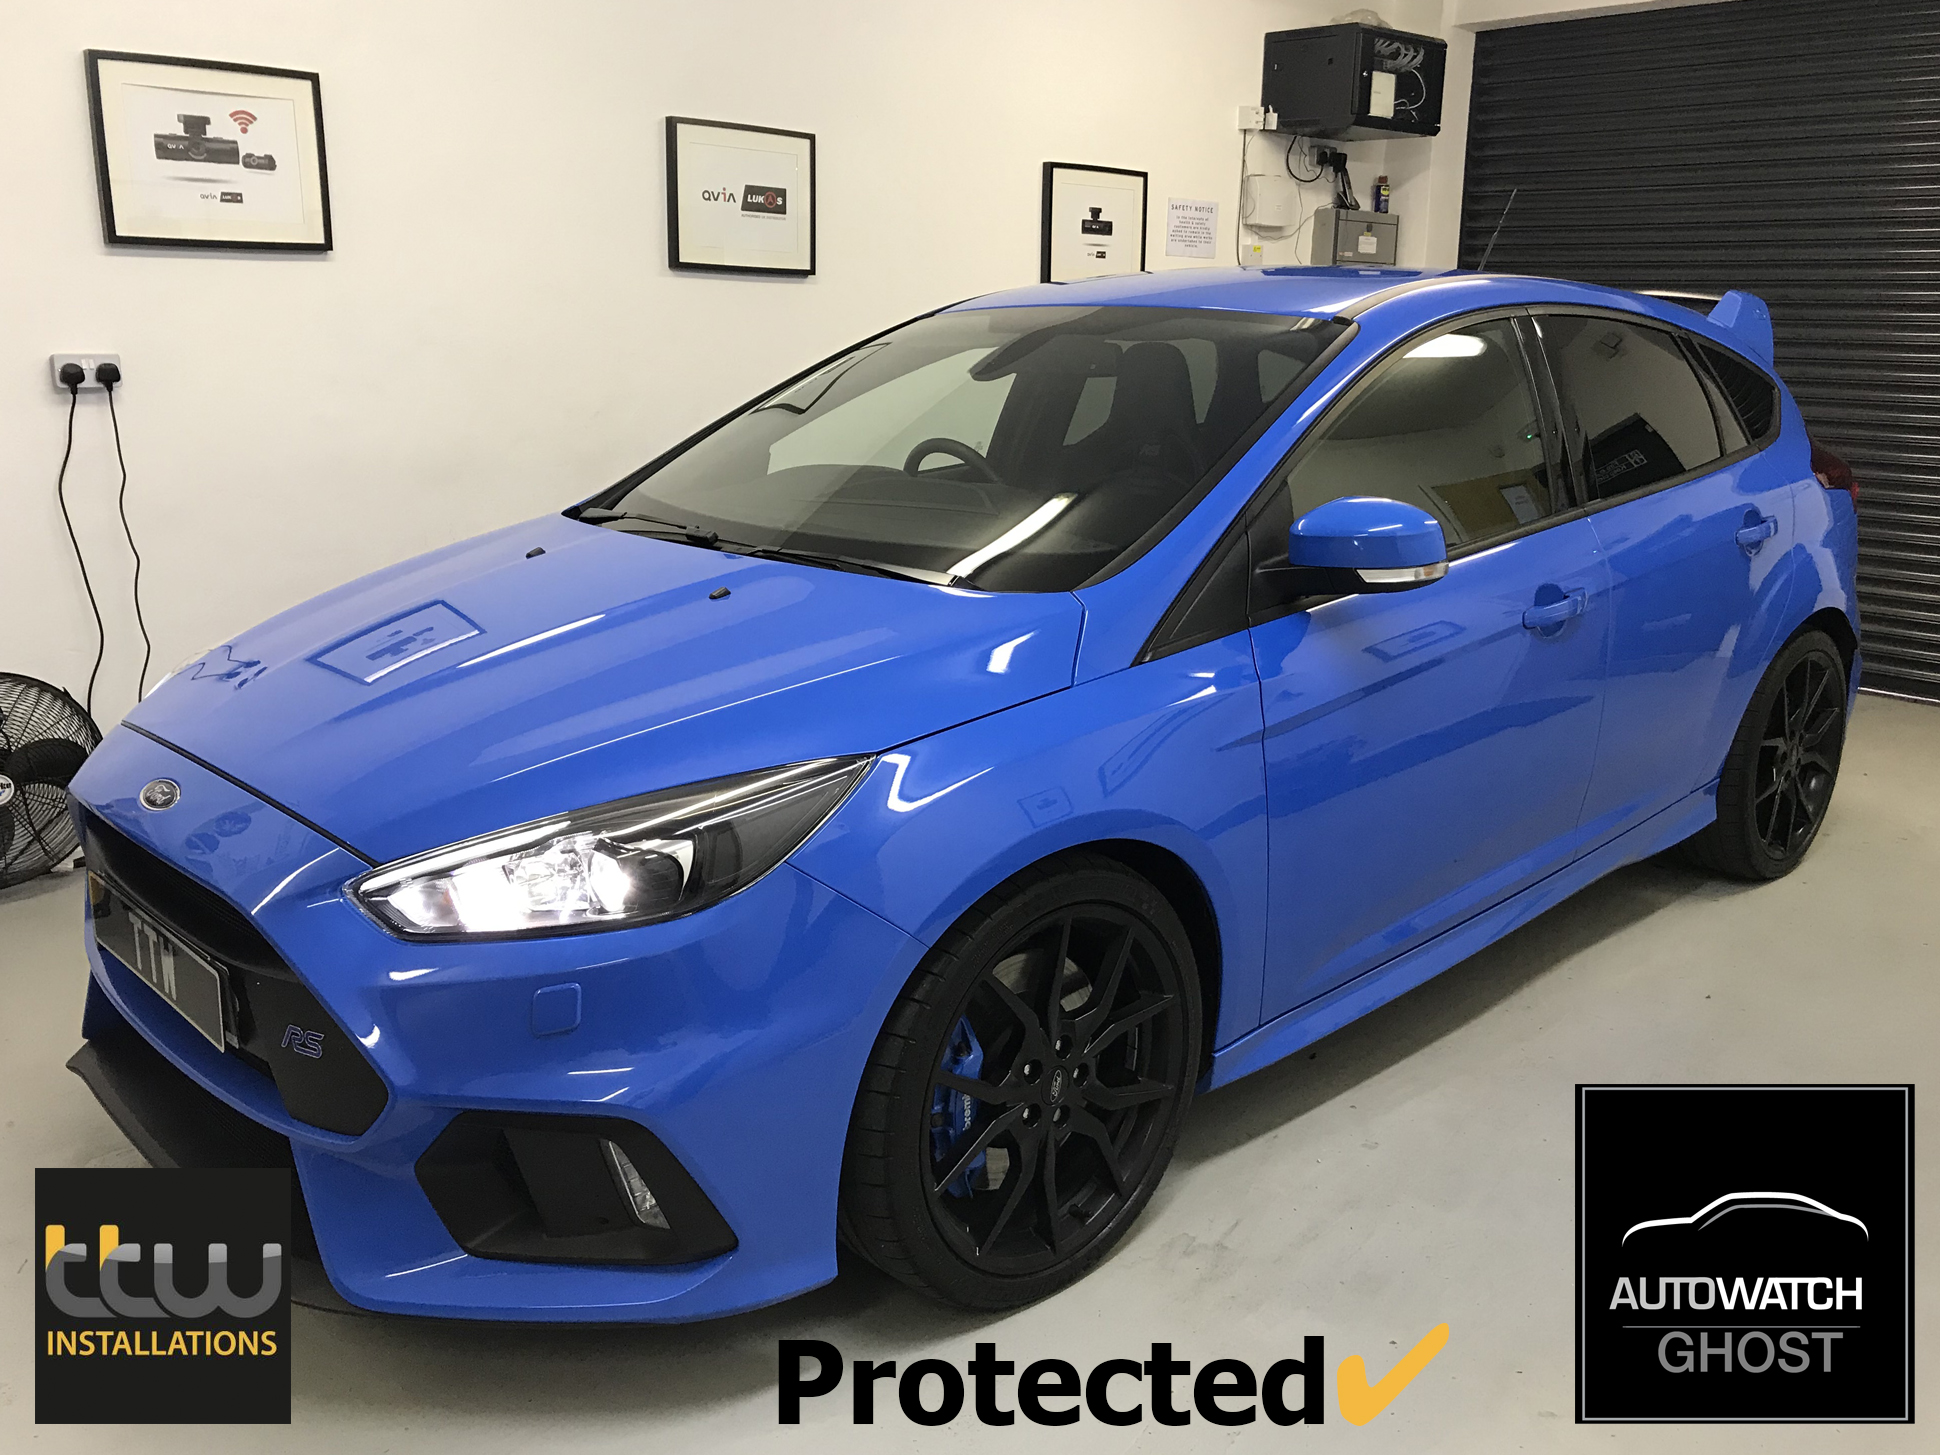 TTW Installations - Autowatch Ghost 2 - UK Installs - Ford Focus RS Specialists